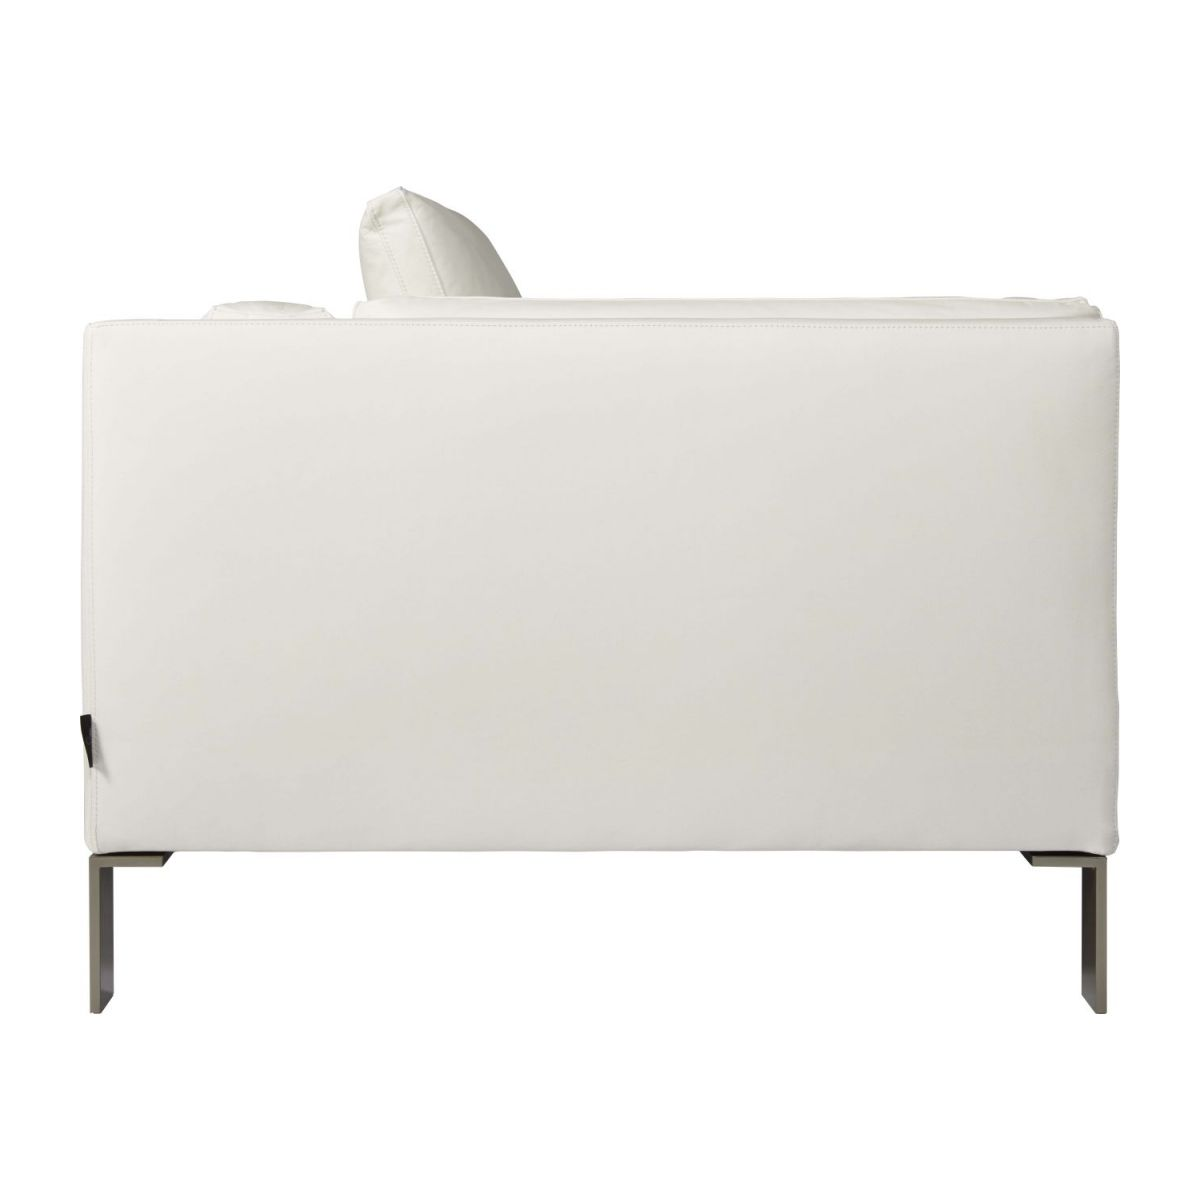 Leather right-arm chaise longue n°5